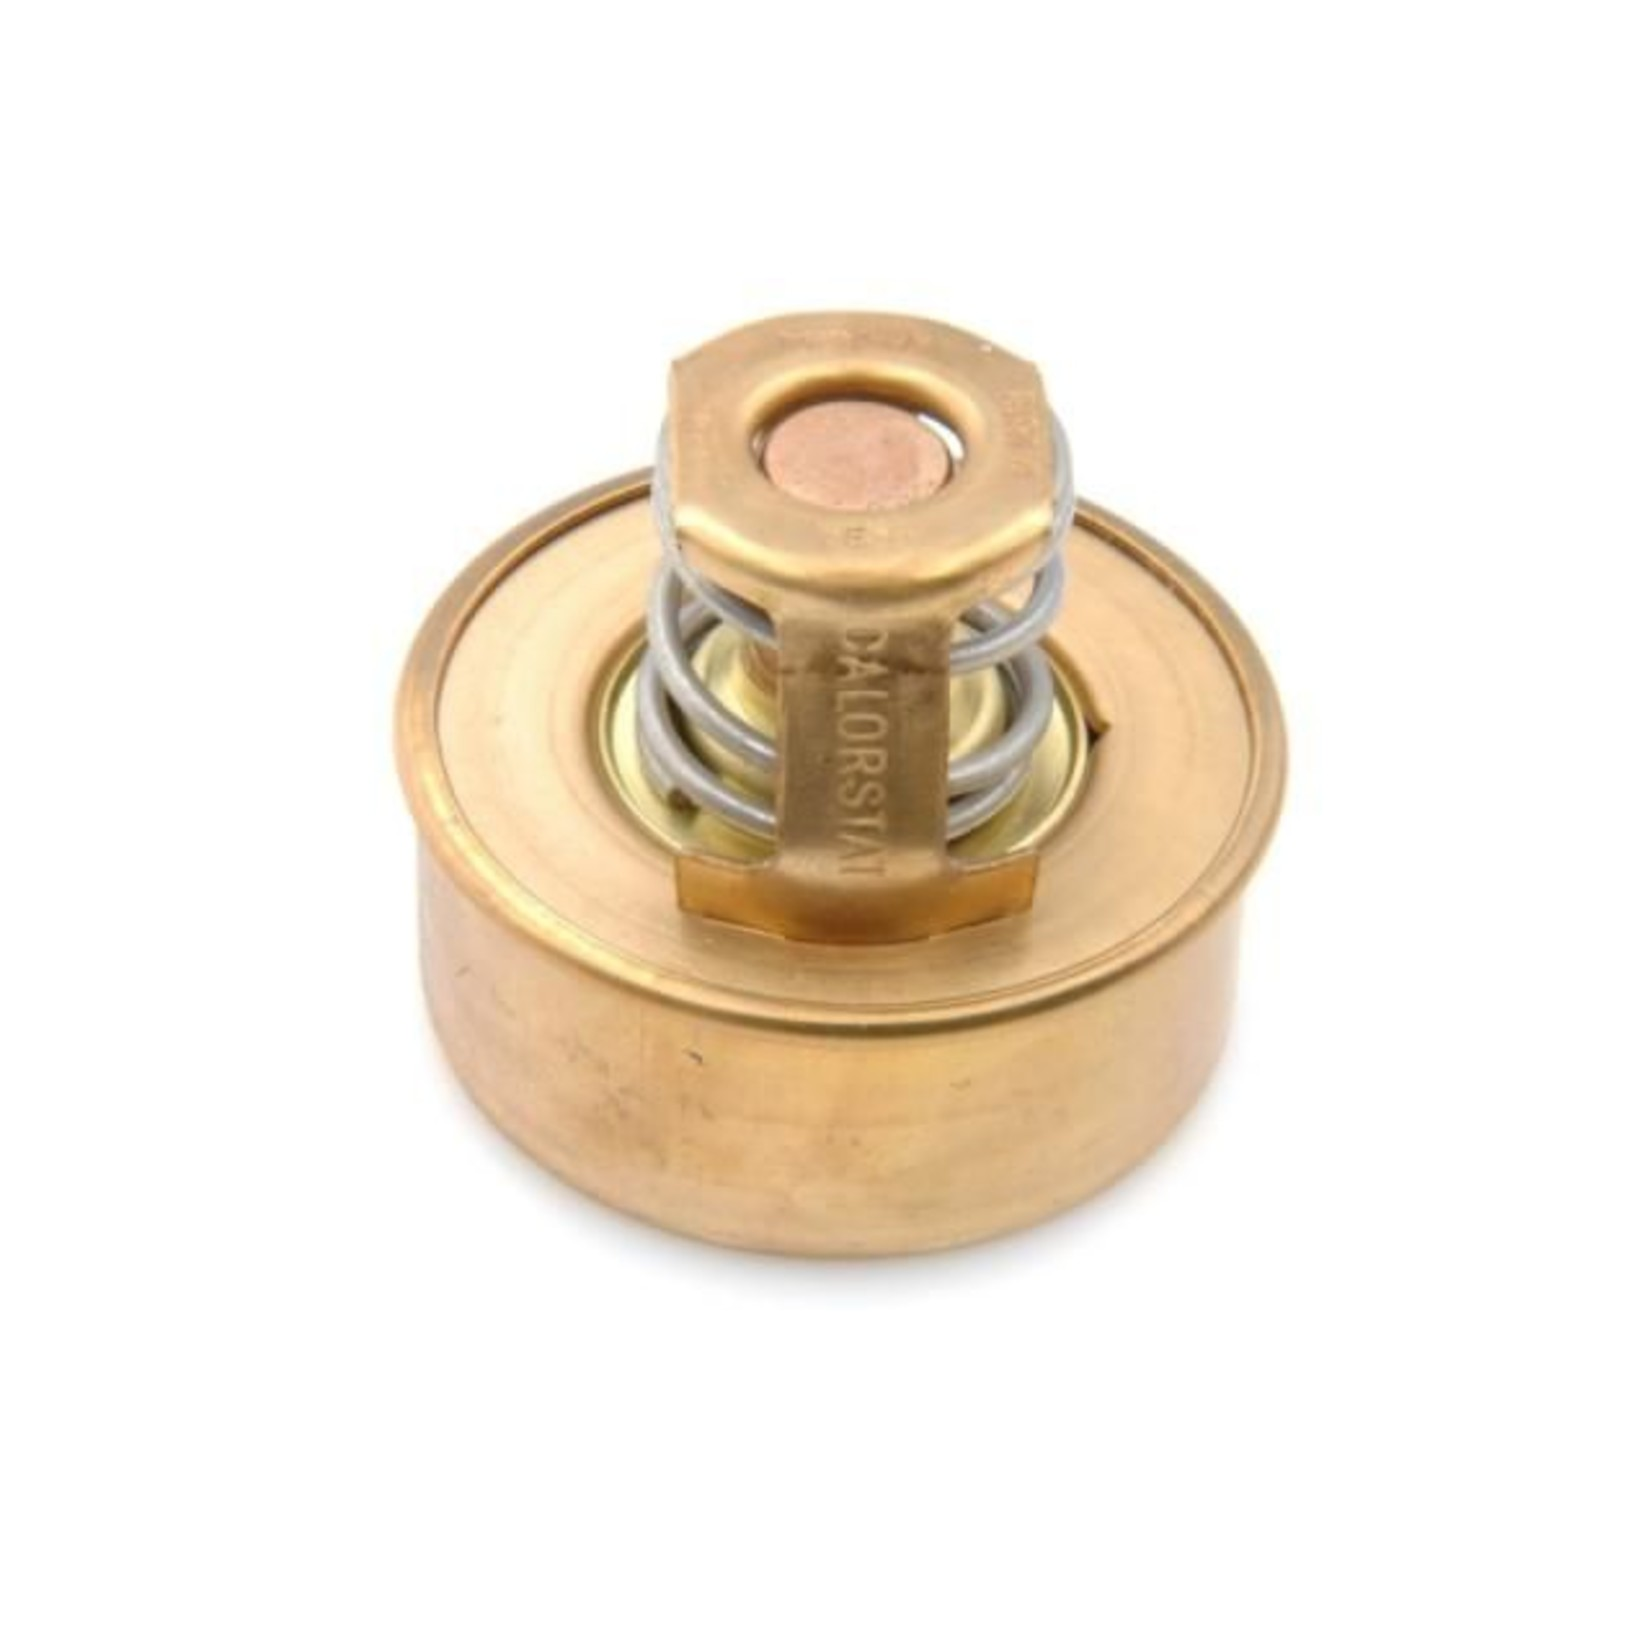 Thermostat in pipe 77°C Nr Org: 5430115